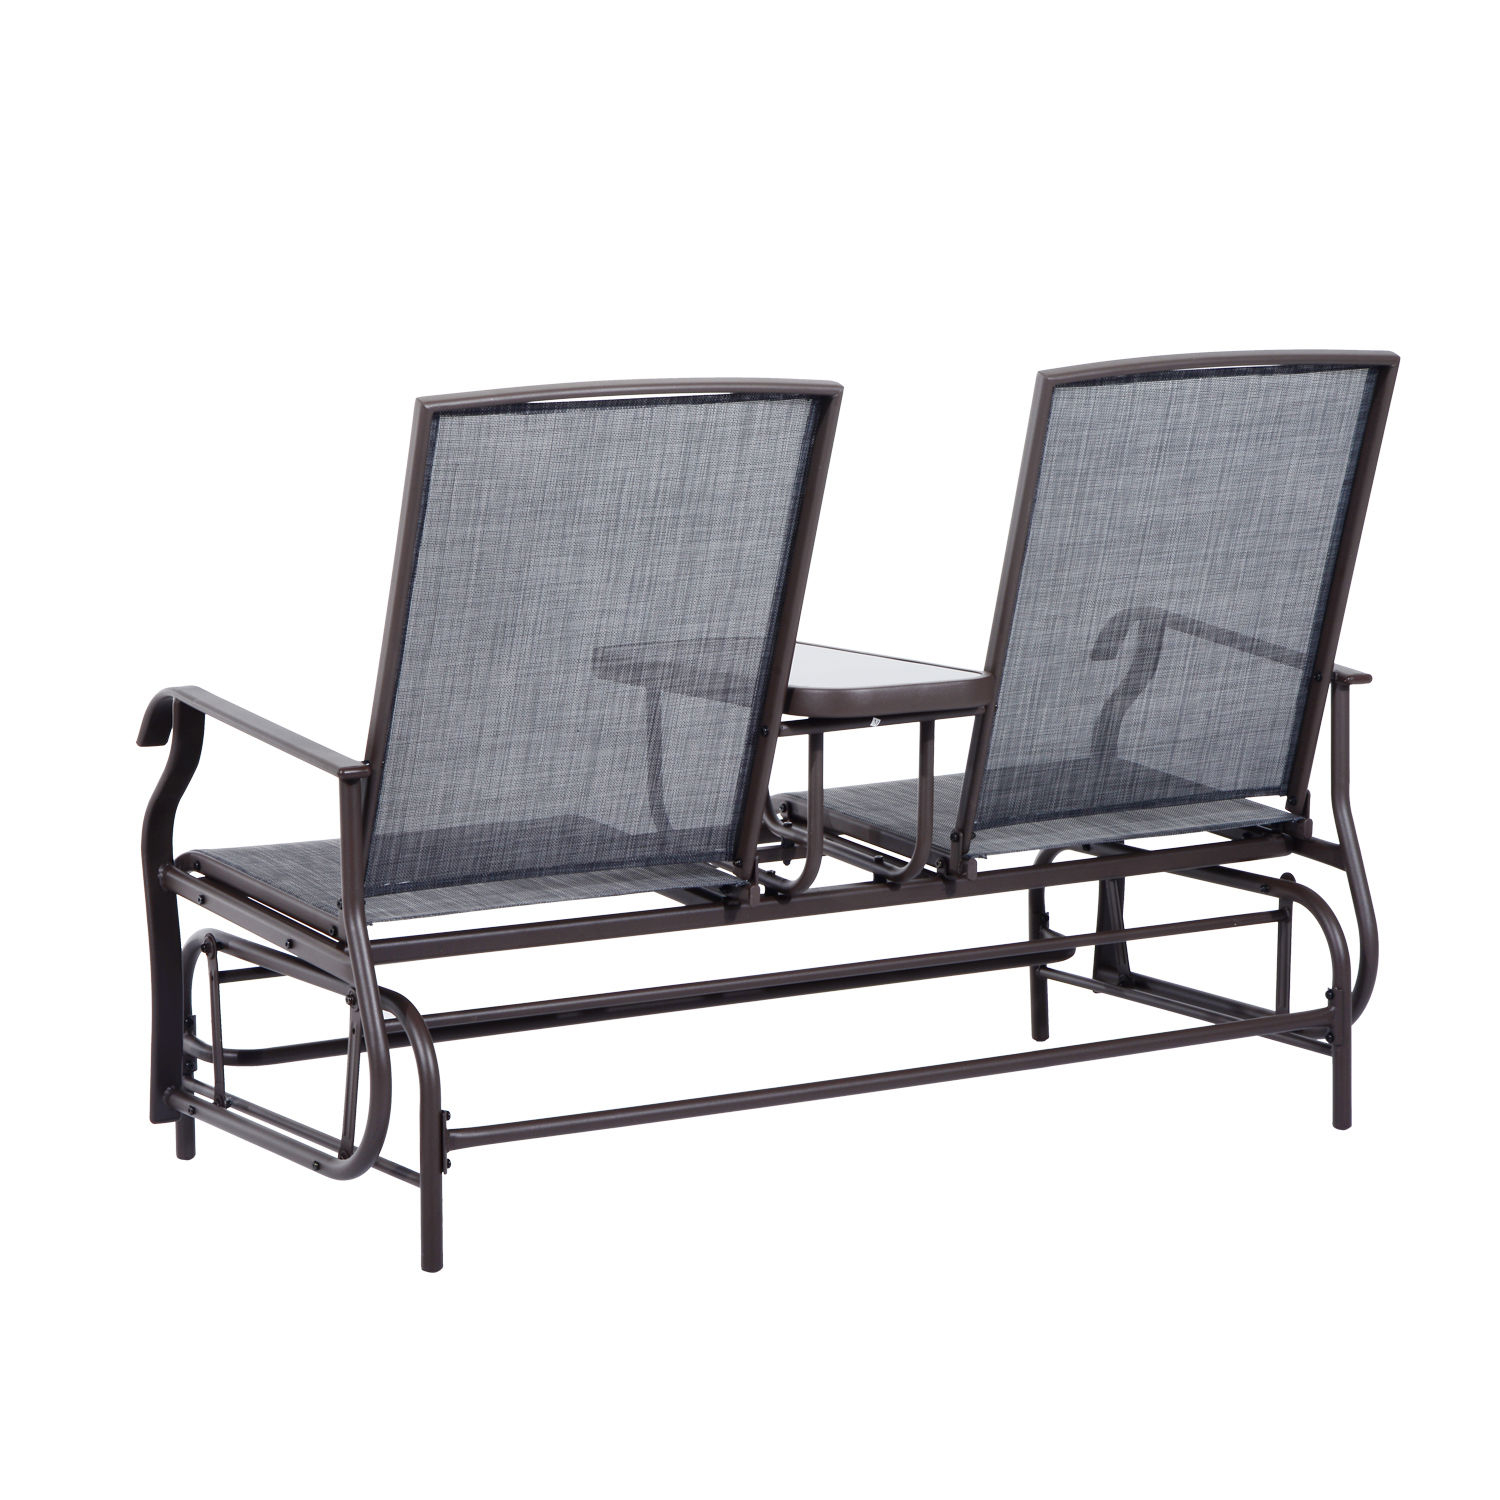 Outsunny 2 Person Outdoor Mesh Fabric Patio Double Glider Inside Center Table Double Glider Benches (View 8 of 25)